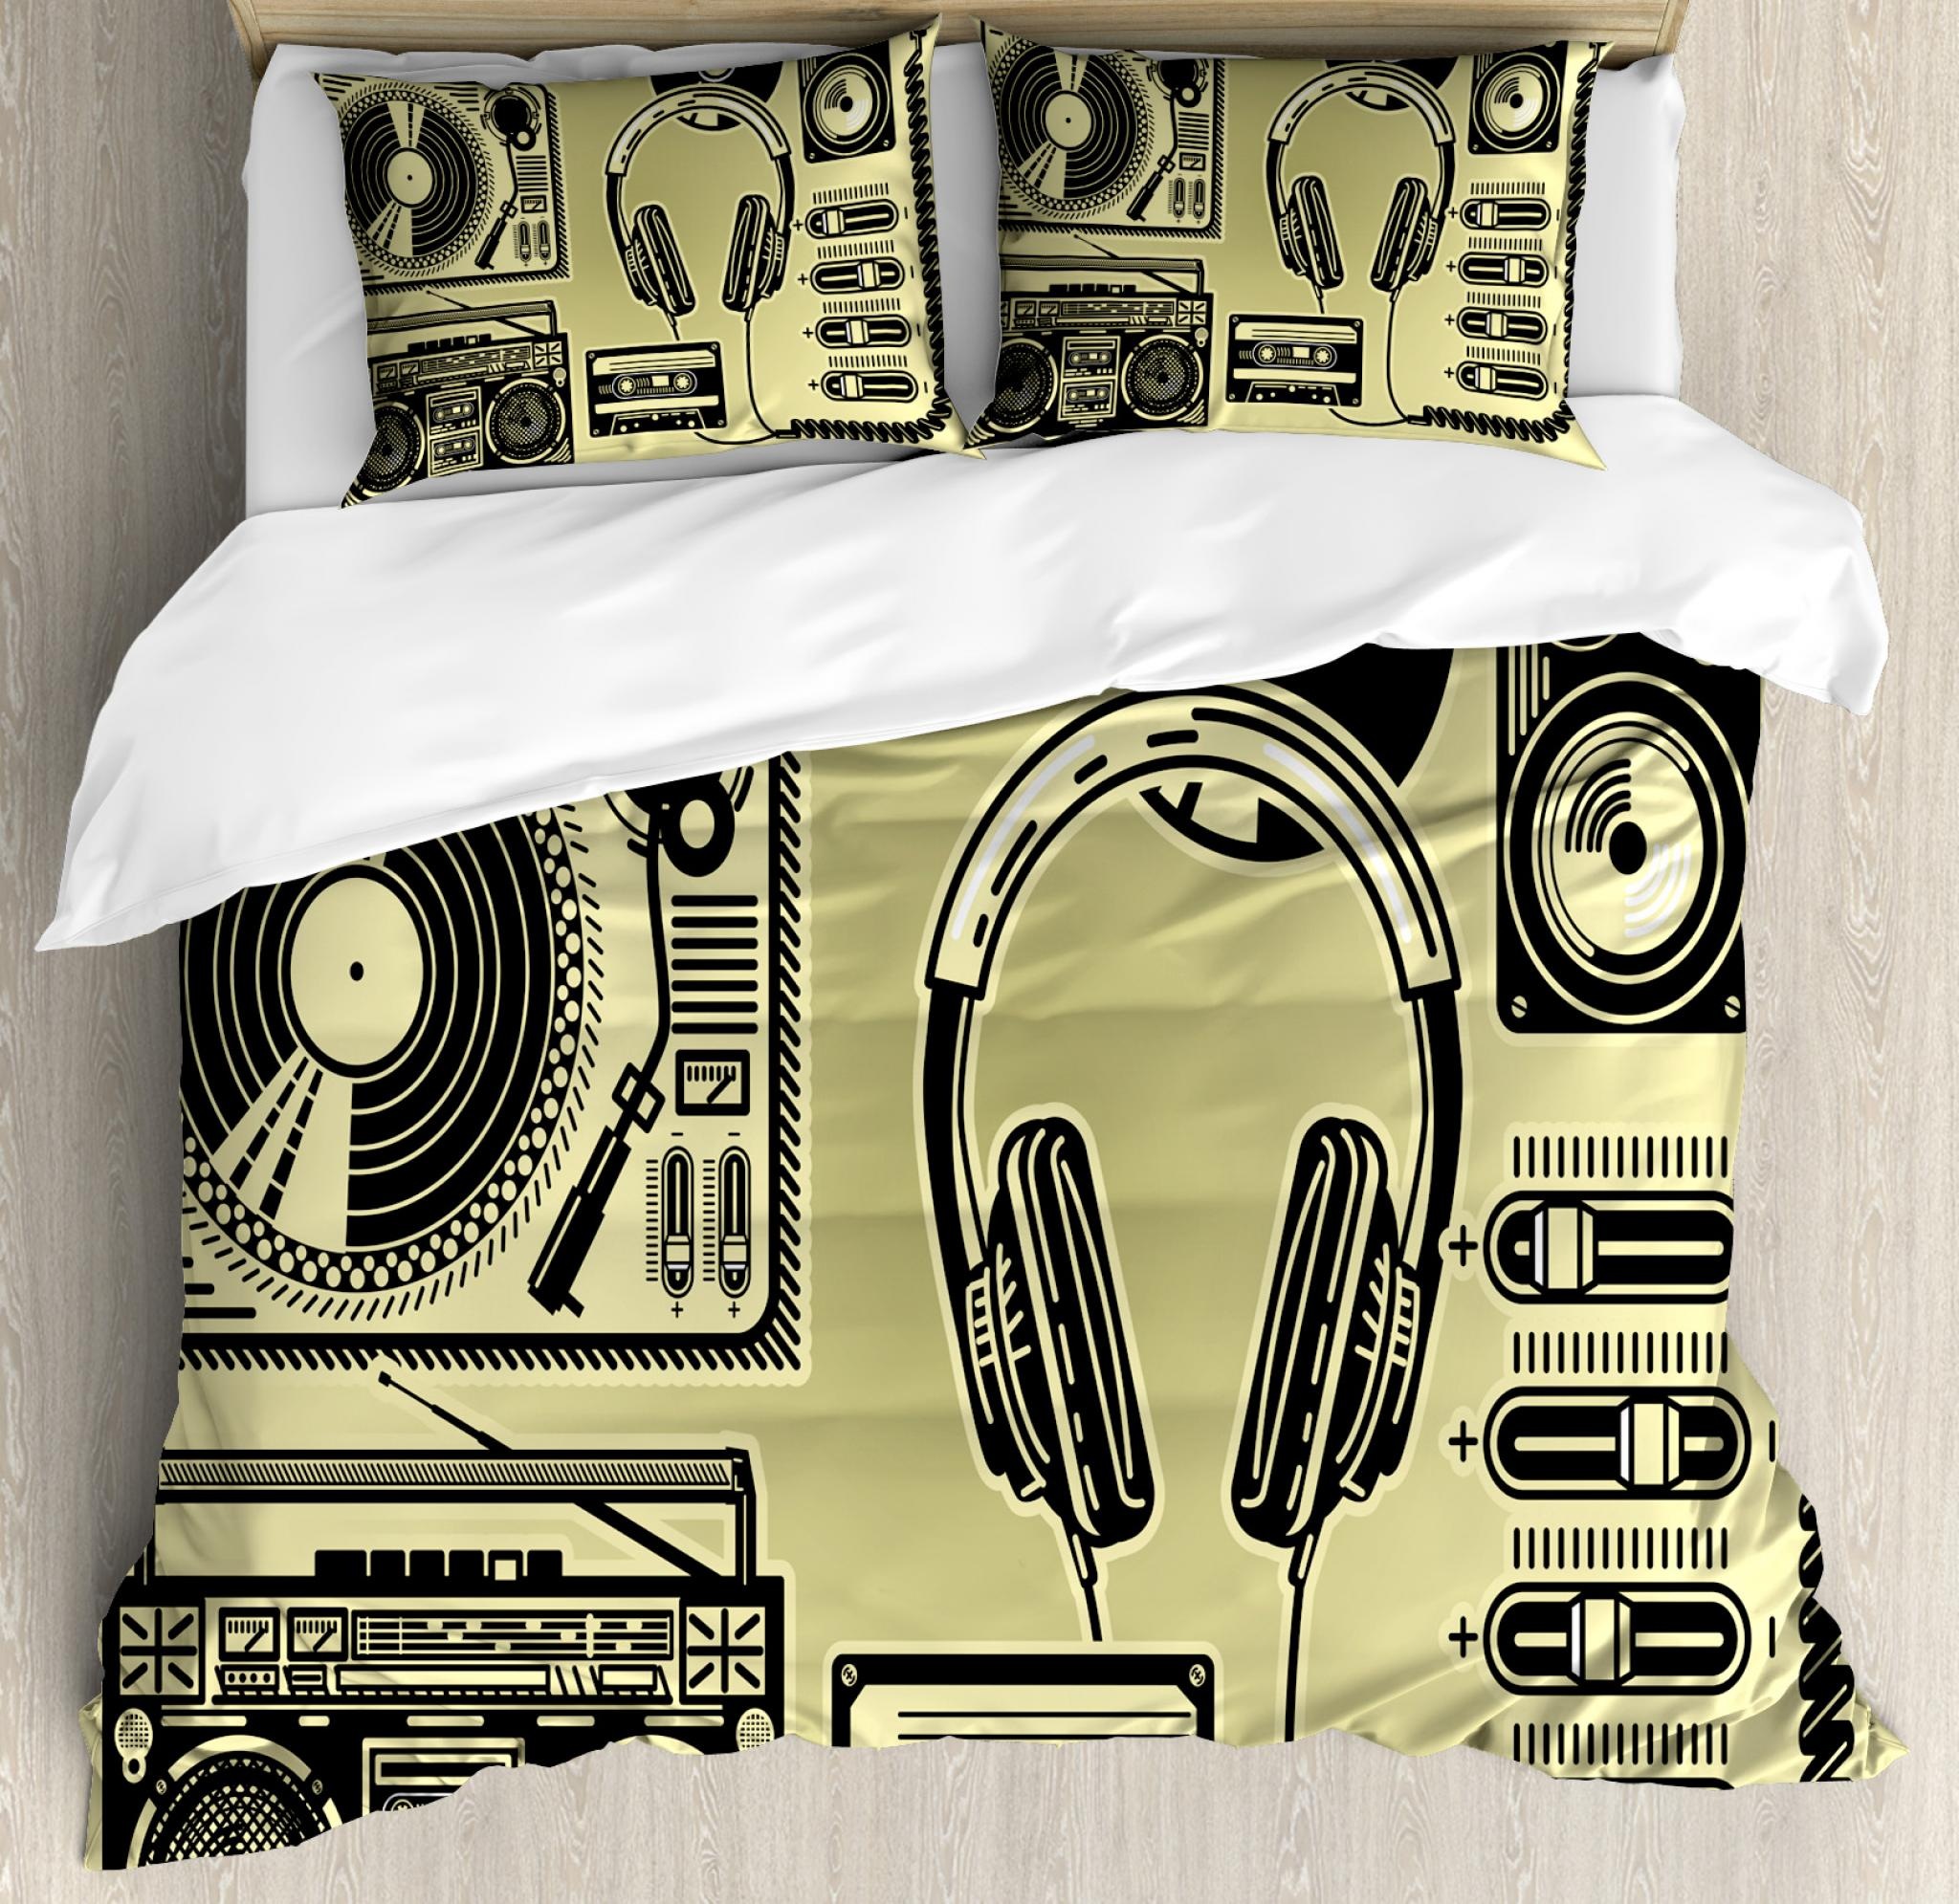 Hip Hop Queen Size Duvet Cover Set, Electronic Music Devices as Turntable Headphones Speaker for Recording, Decorative 3 Piece Bedding Set with 2 Pillow Shams, Pale Yellow and Black, by Ambesonne